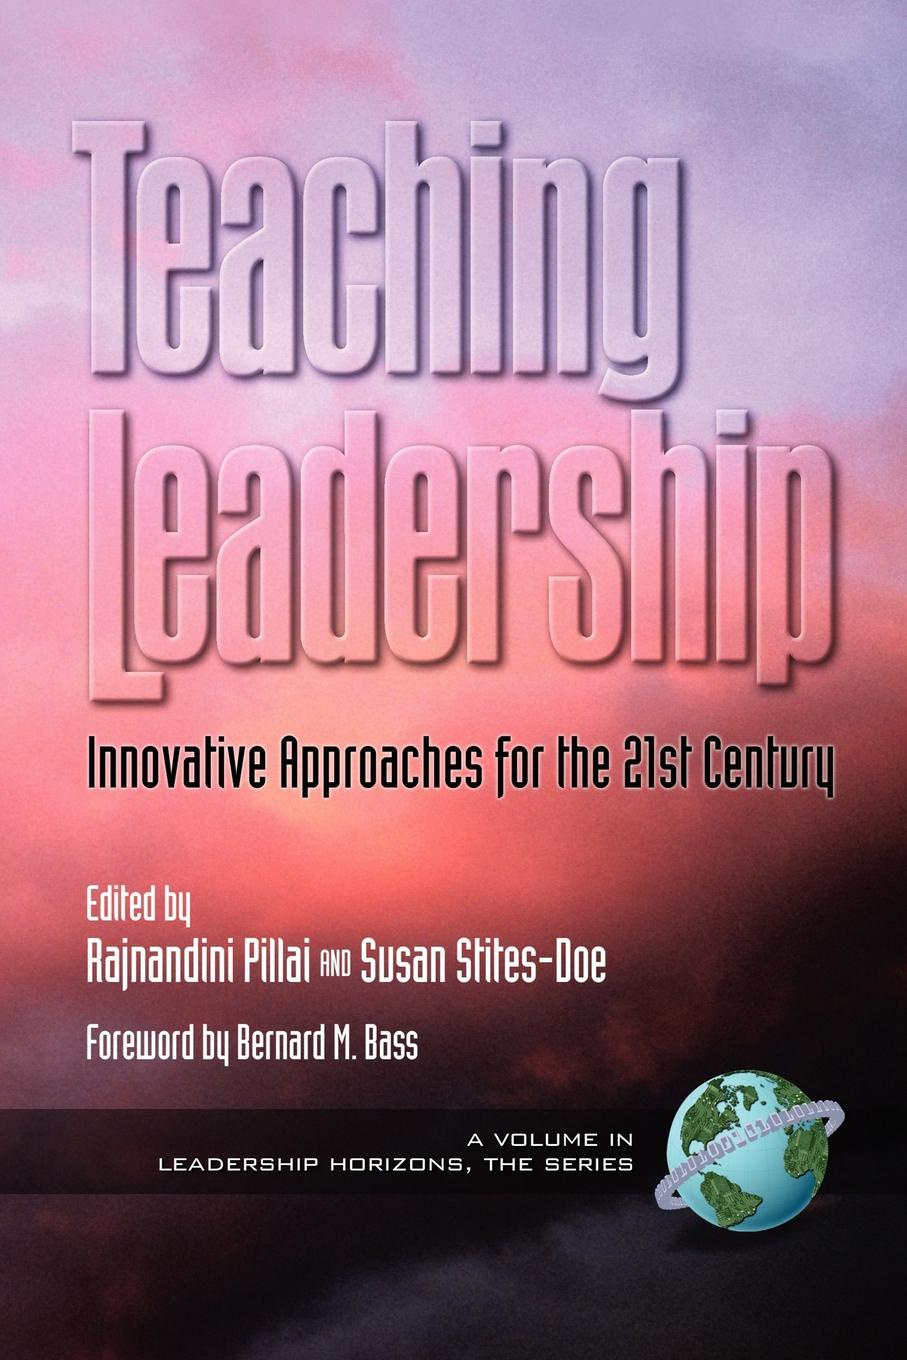 Teaching Leadership. Innovative Approaches for the 21st Century (PB)